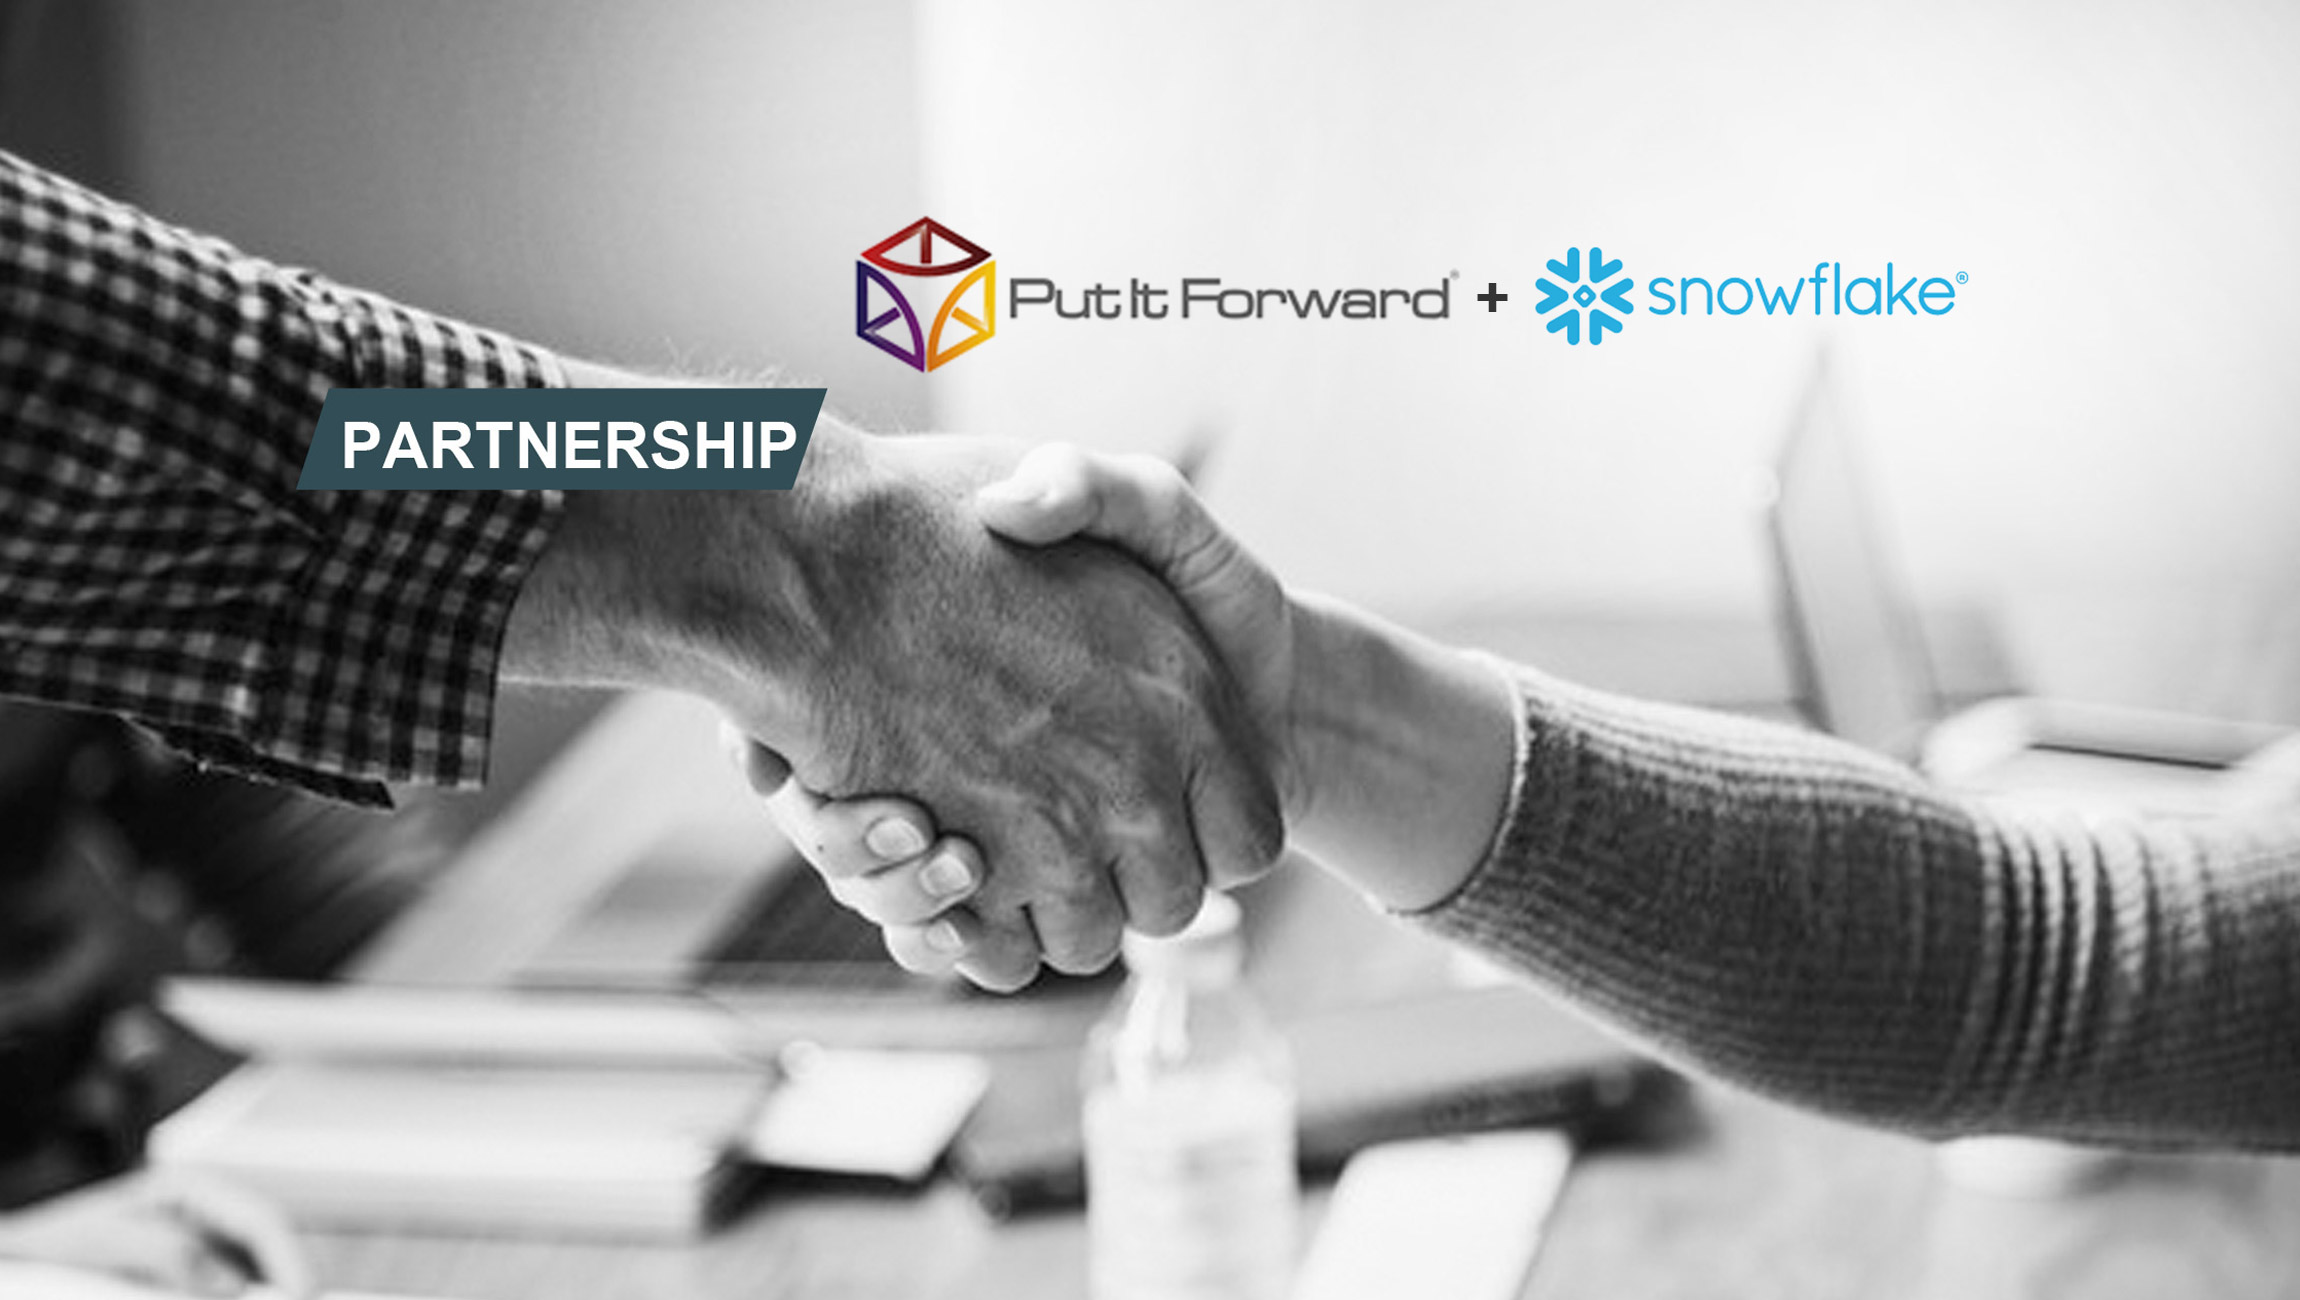 Put-It-Forward-Deepens-Snowflake-Partnership-to-Deliver-End-to-End-Data-Solutions-With-Snowflake-Snowpark